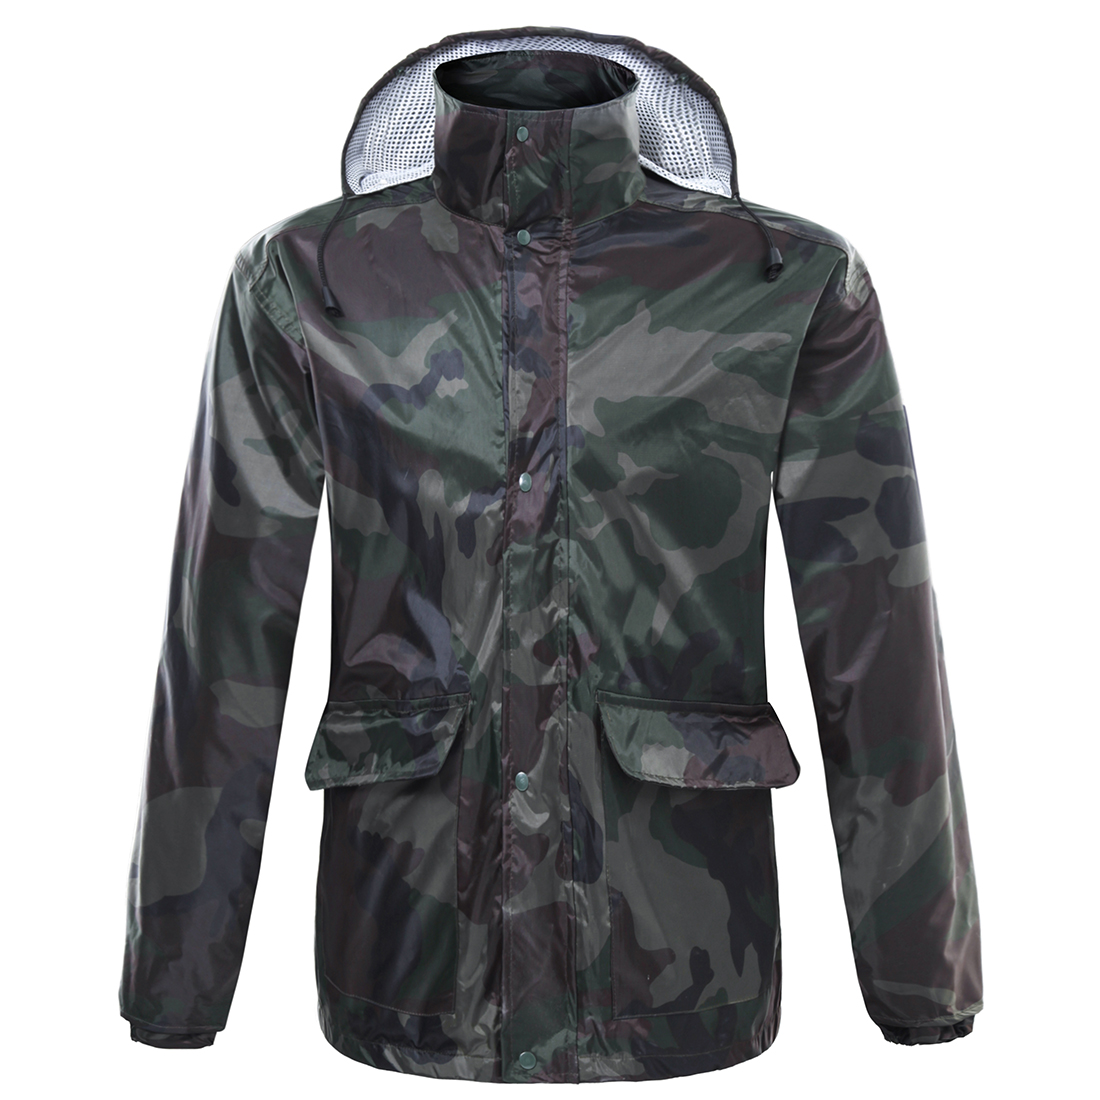 iguardor Camouflage Riding Raincoat Suit Outdoor Cycling Breathable Rainwear - Army Green XL